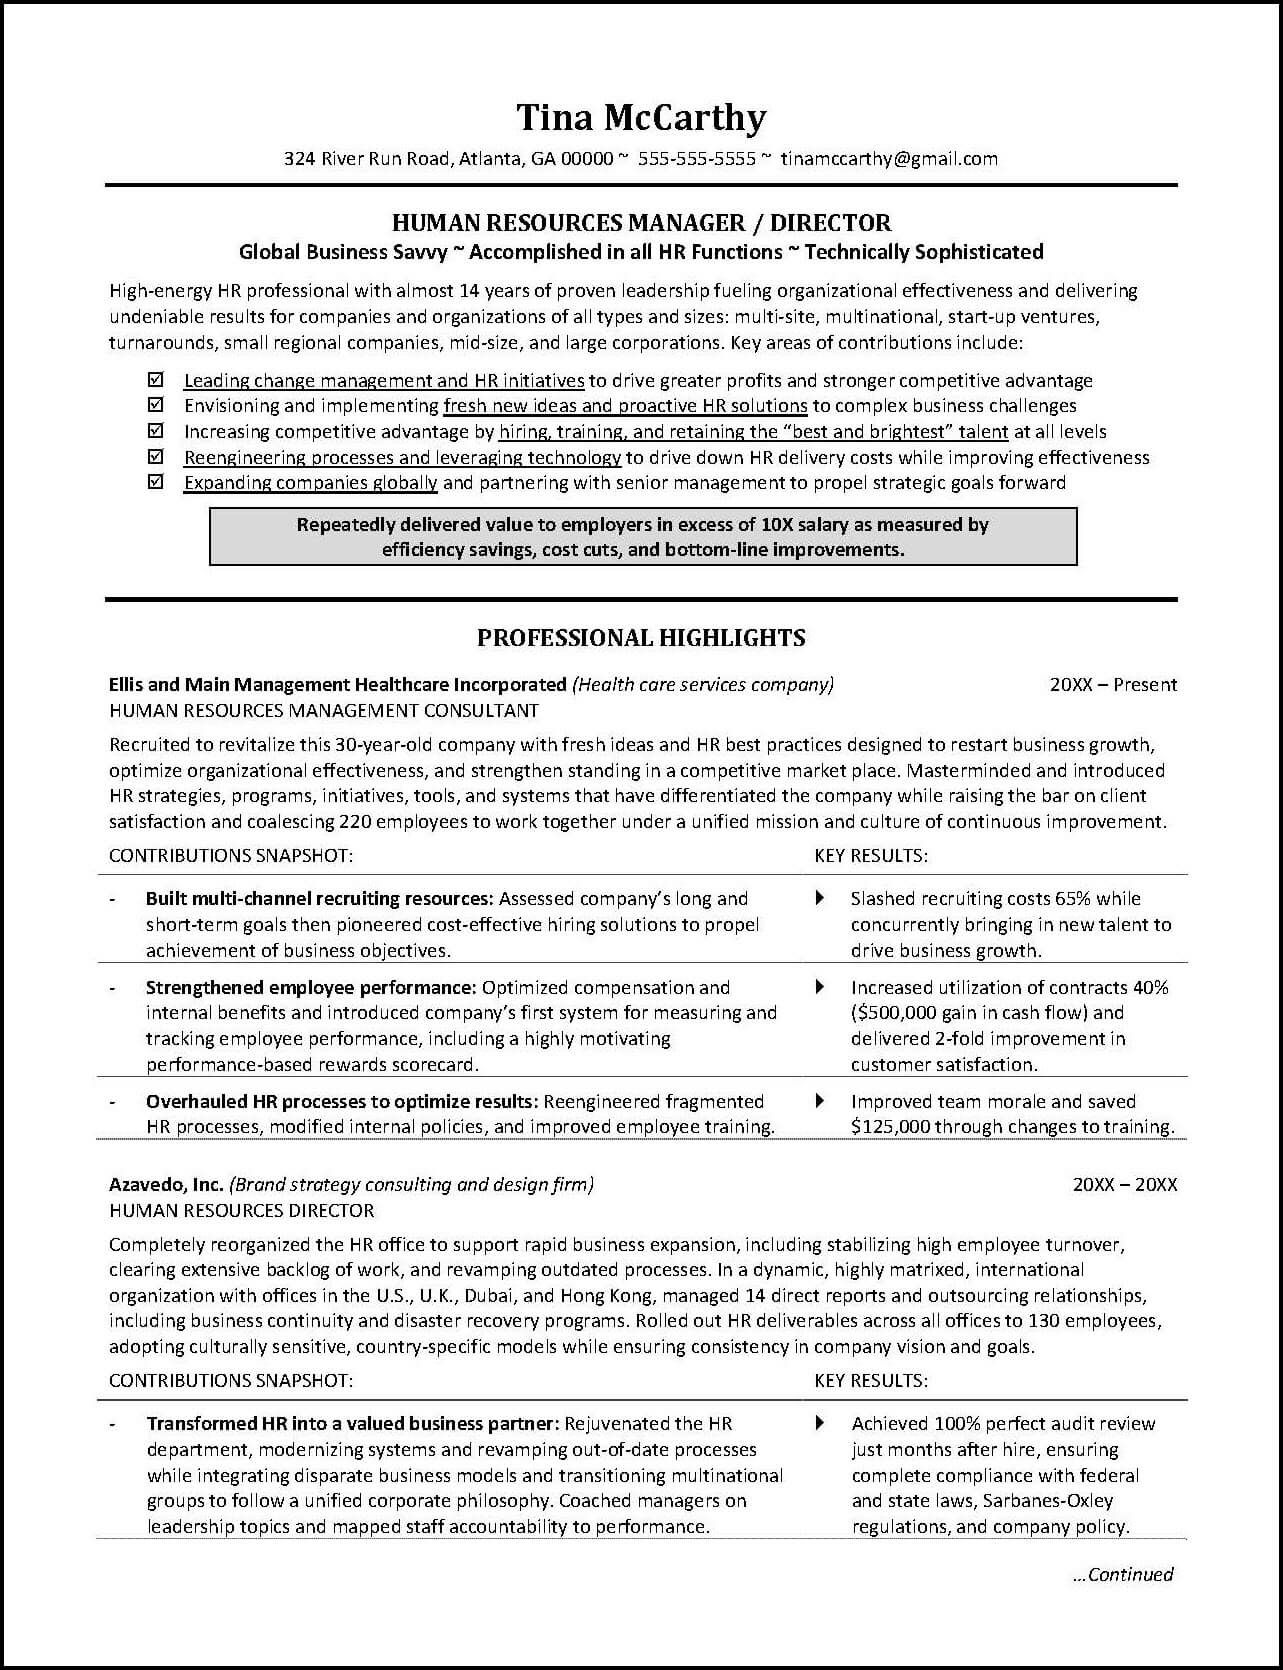 1000 images about resume examples human resources 1000 images about resume examples human resources student resume and resume help